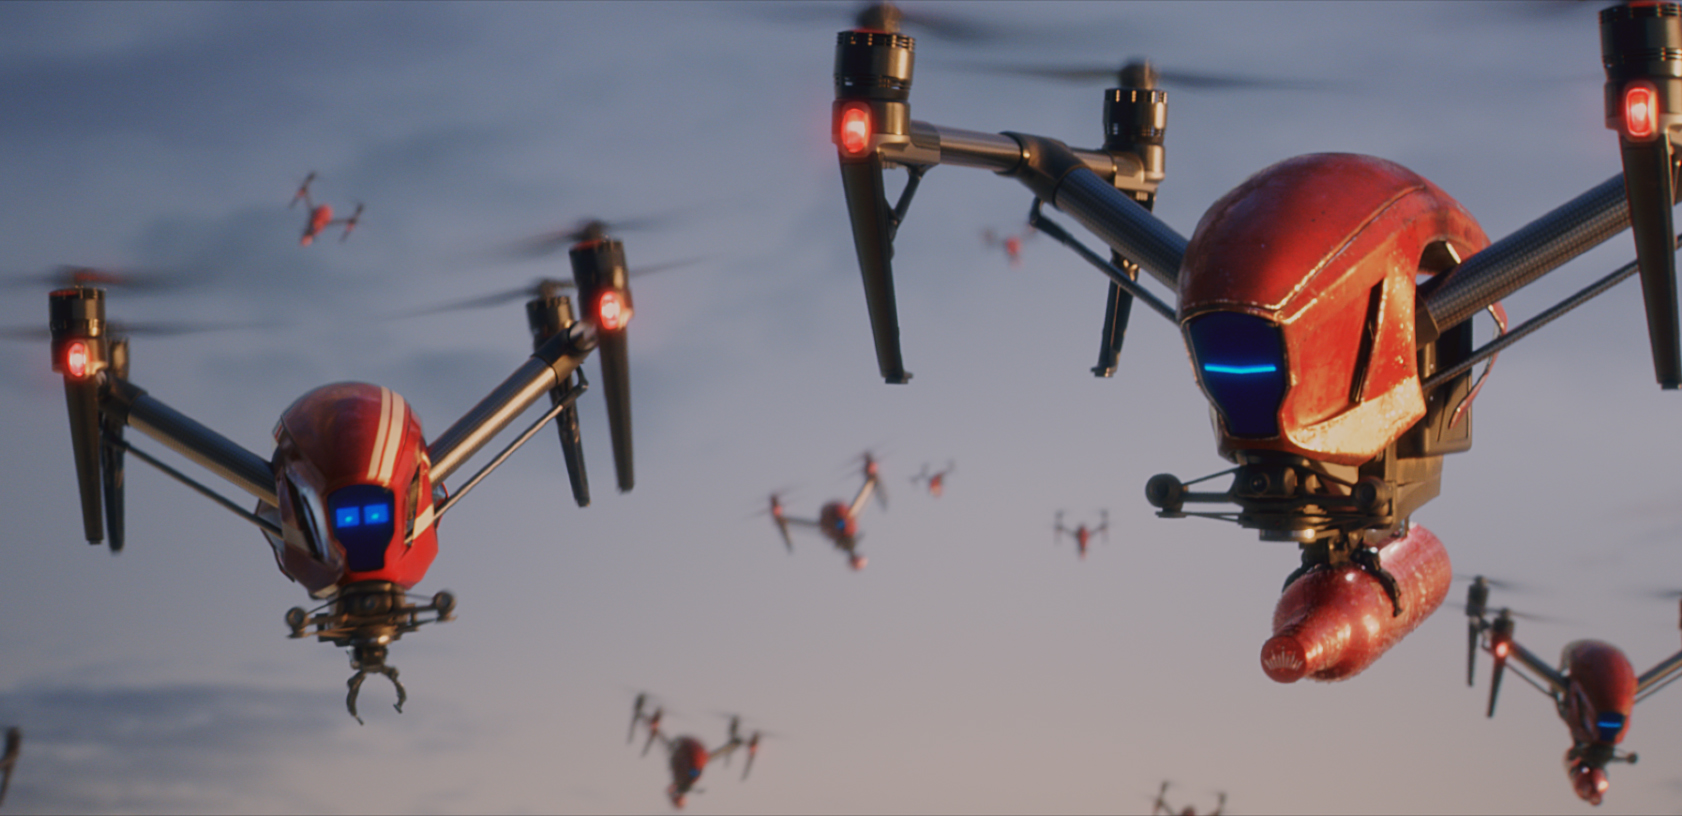 Amazing Budweiser World Cup 2018 - Budweiser-World-Cup-campaign-Hero-Drone-1600  Gallery_131513 .jpg